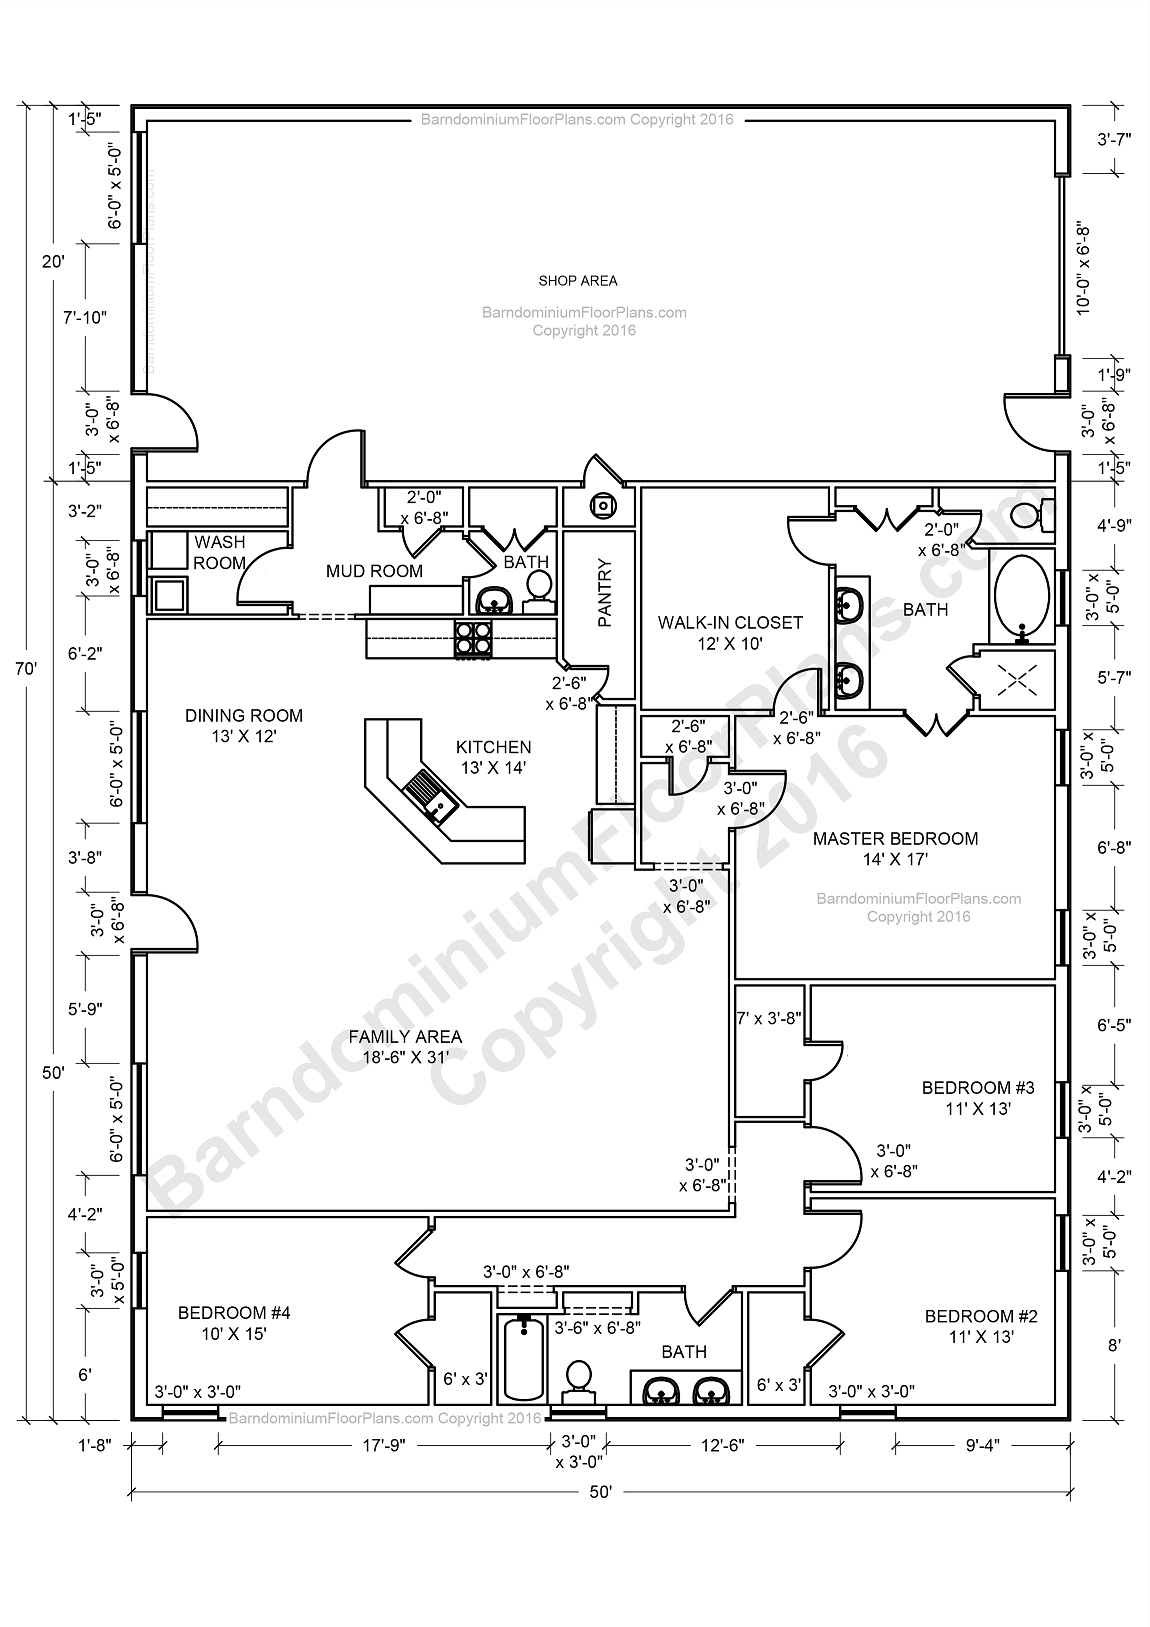 Barndominium floor plans barndominium floor plans 1 800 for Metal pole barn homes plans